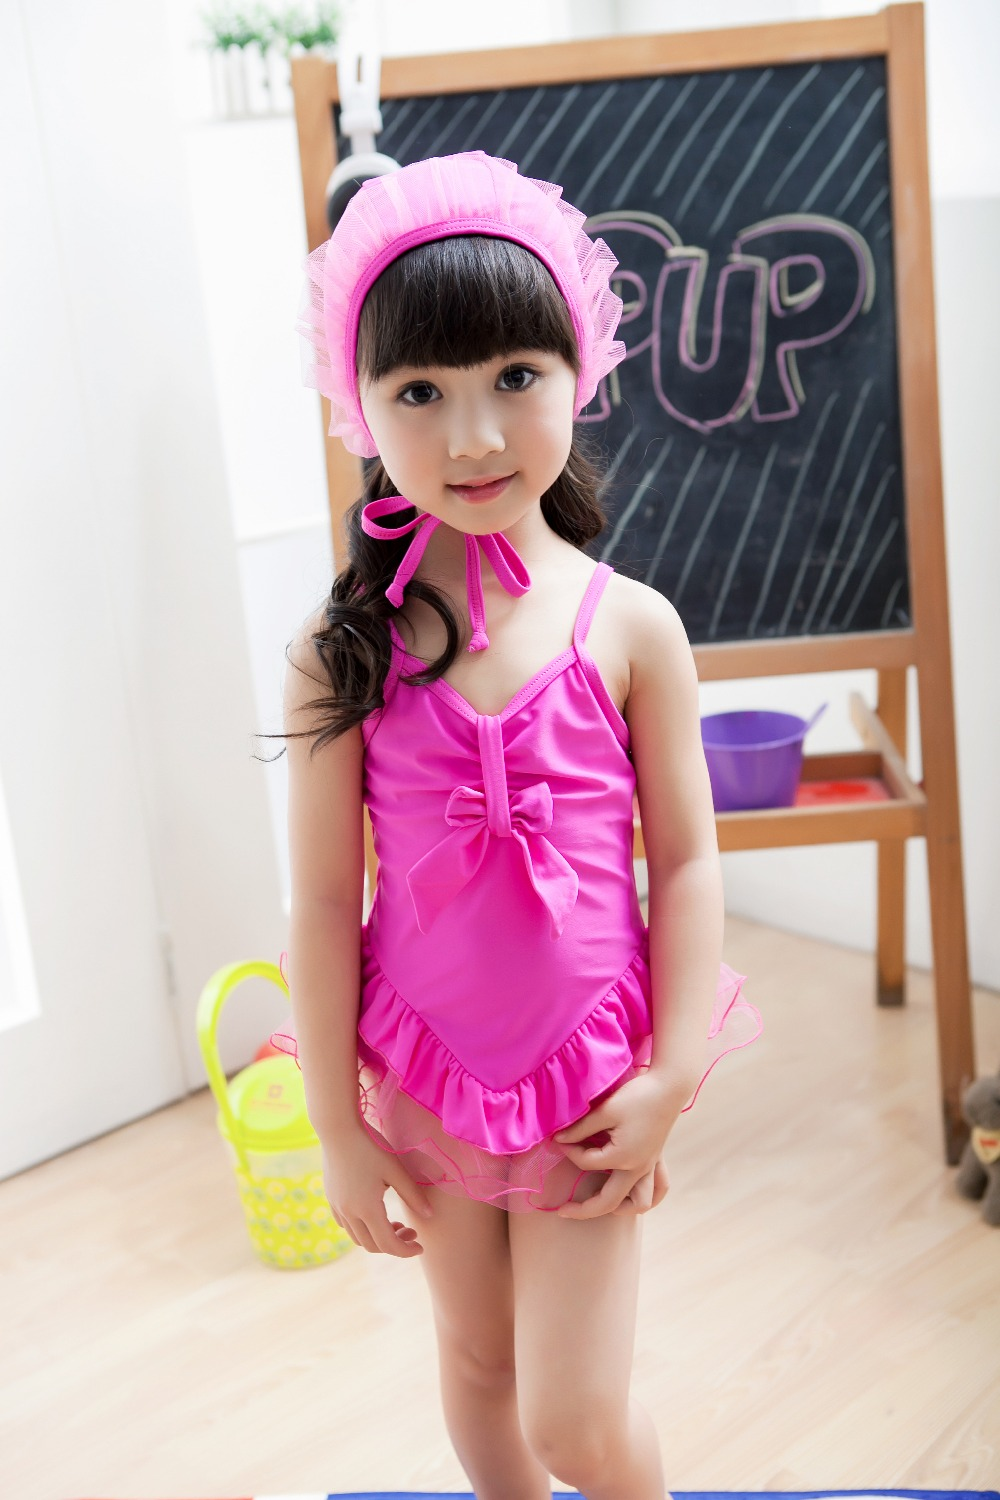 pink and hot pink new  style summer girls one piece swimwear  lace  baby swimwear with swimming cap SW129 10pcs/lot DHL free<br><br>Aliexpress